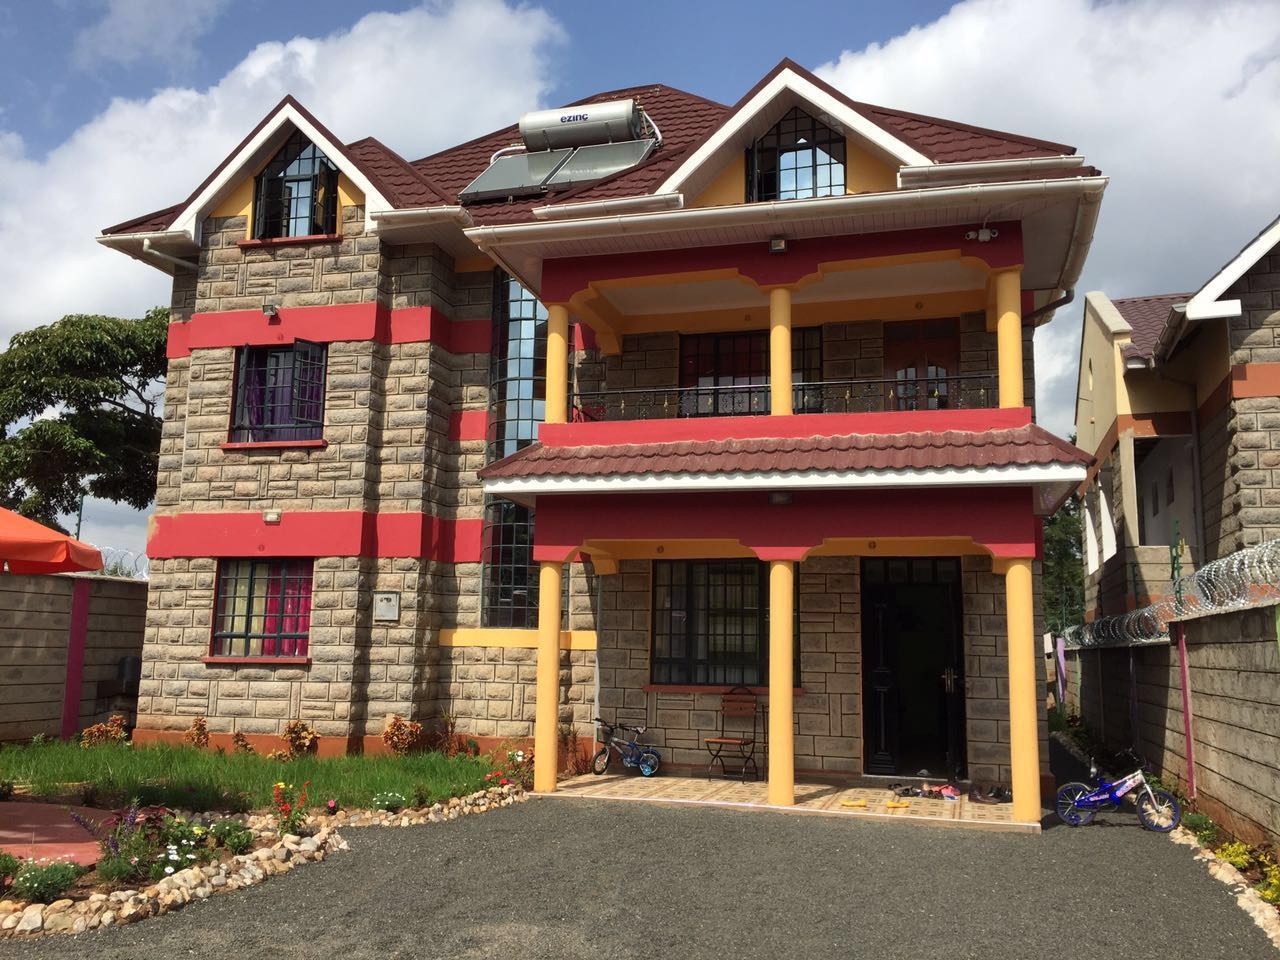 MANSION IN NGONG